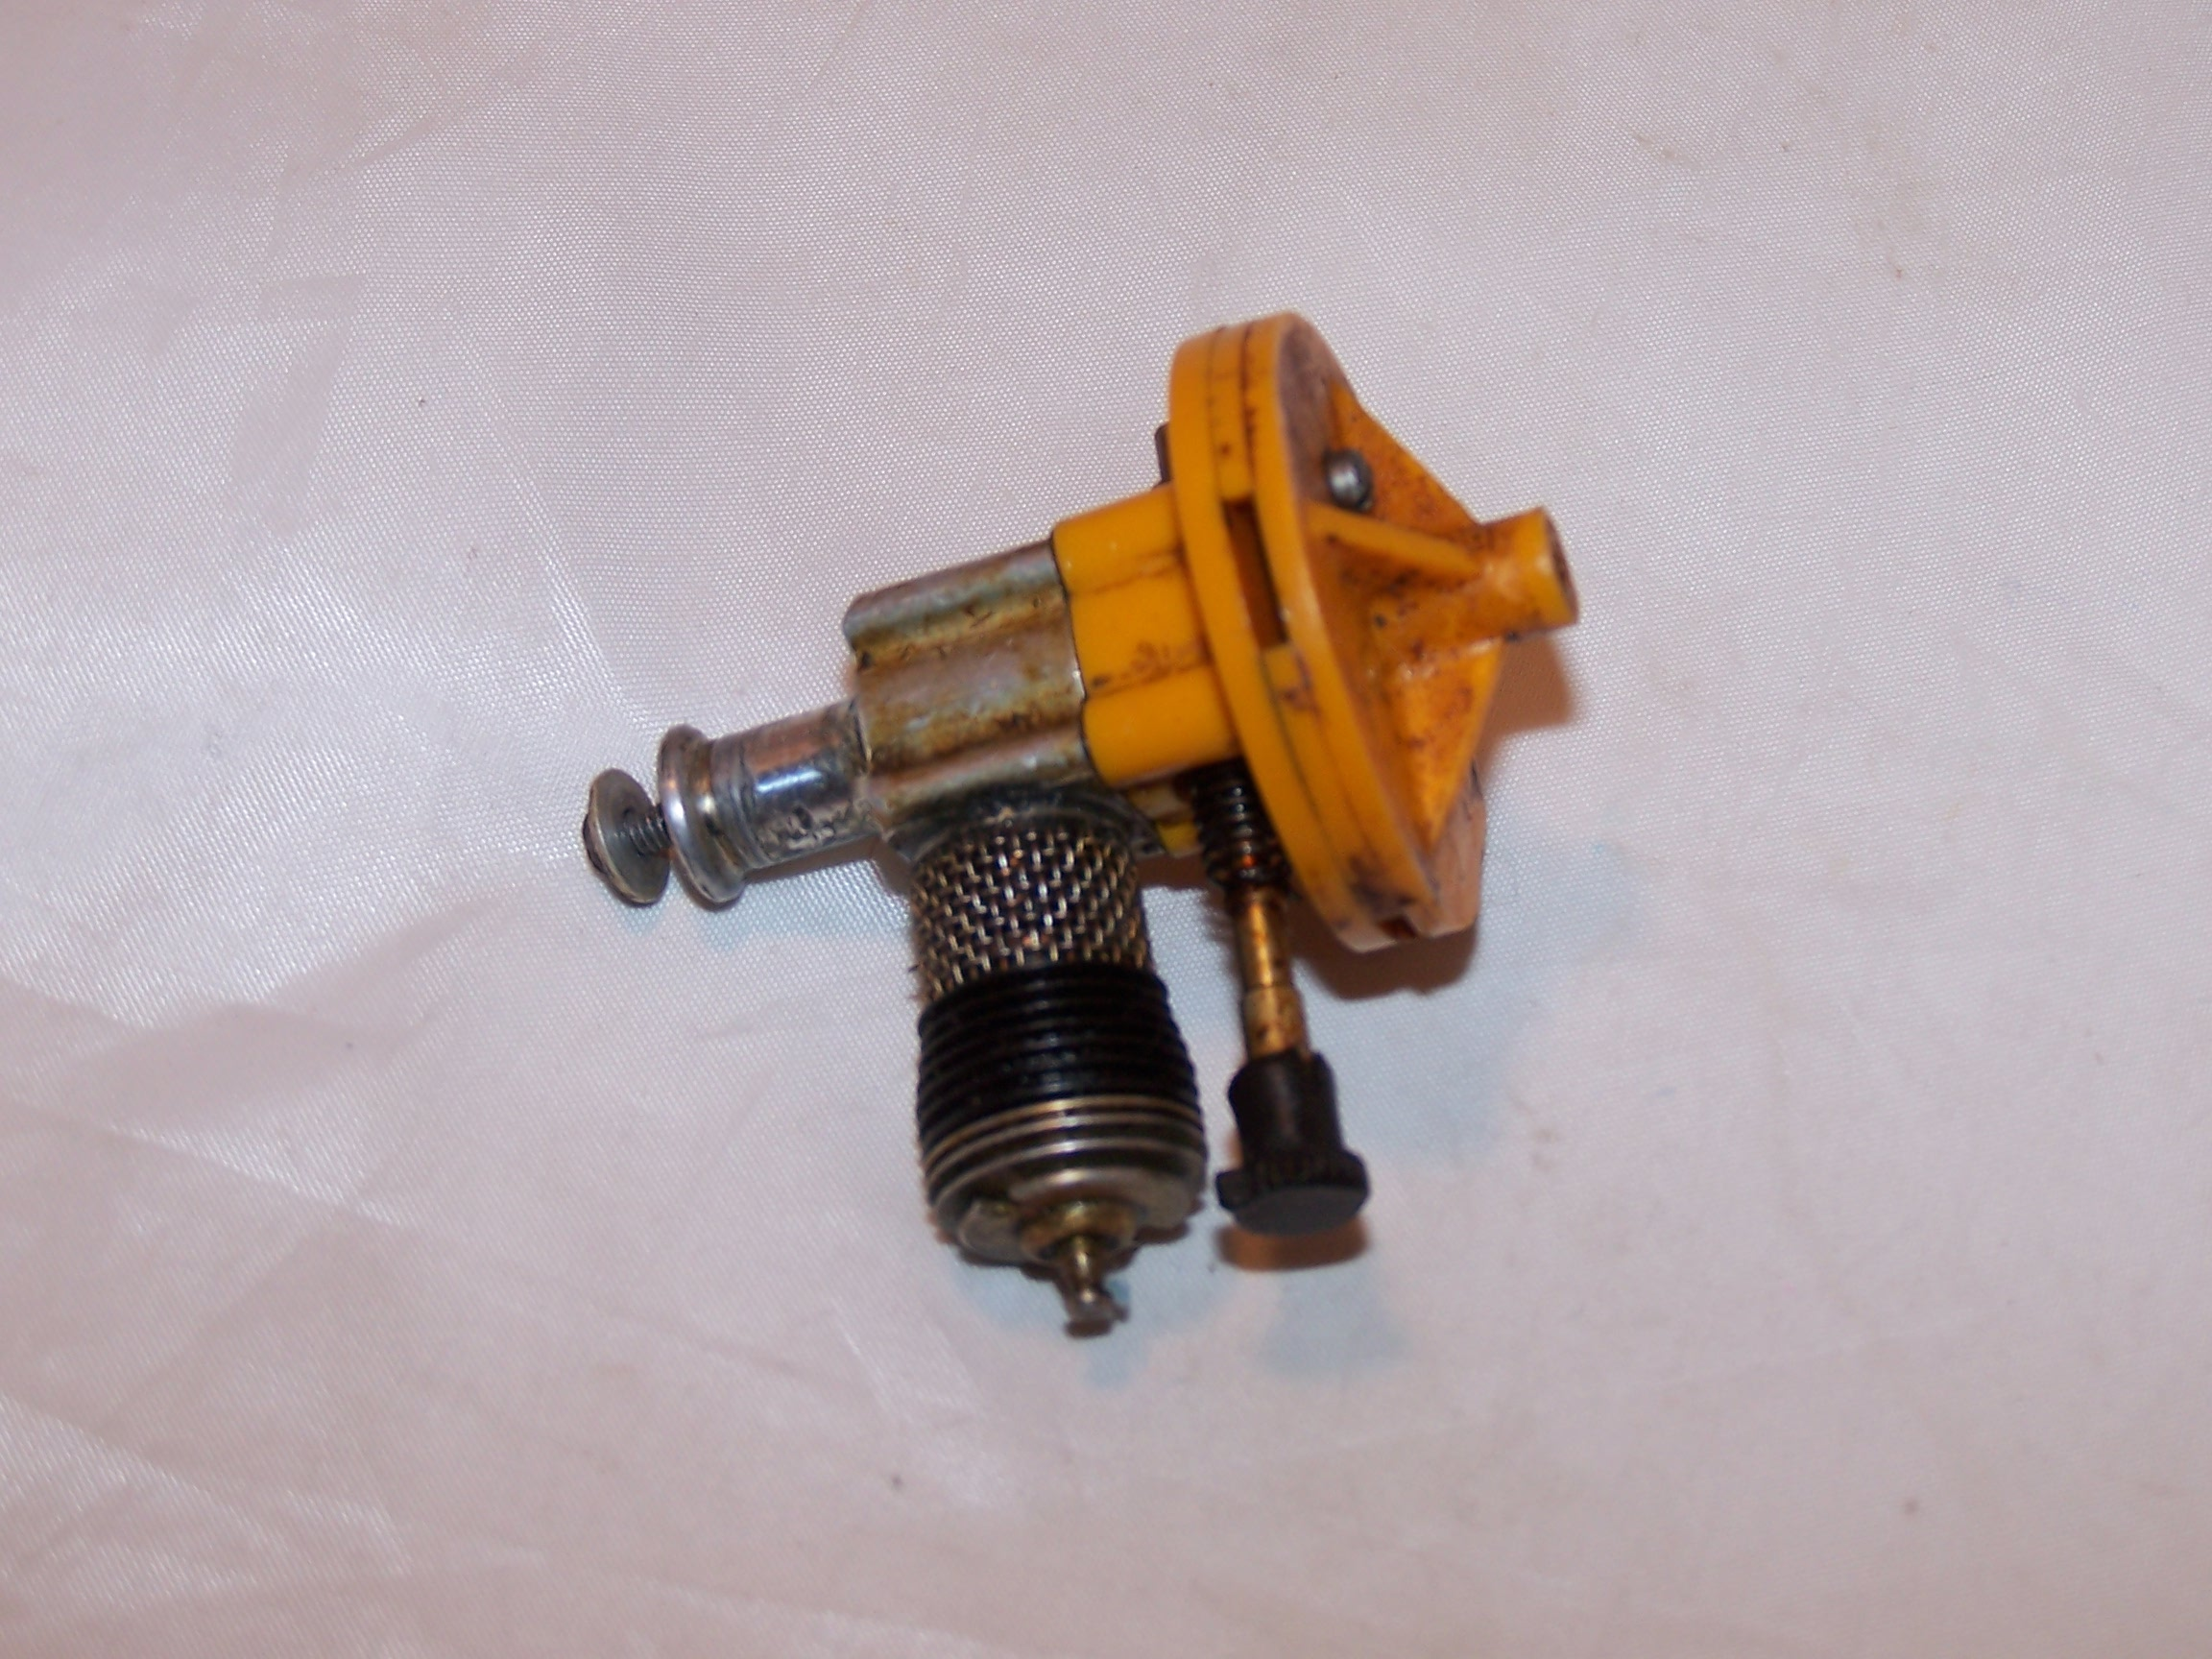 Image 3 of Radio Control RC Airplane Motor, Vintage